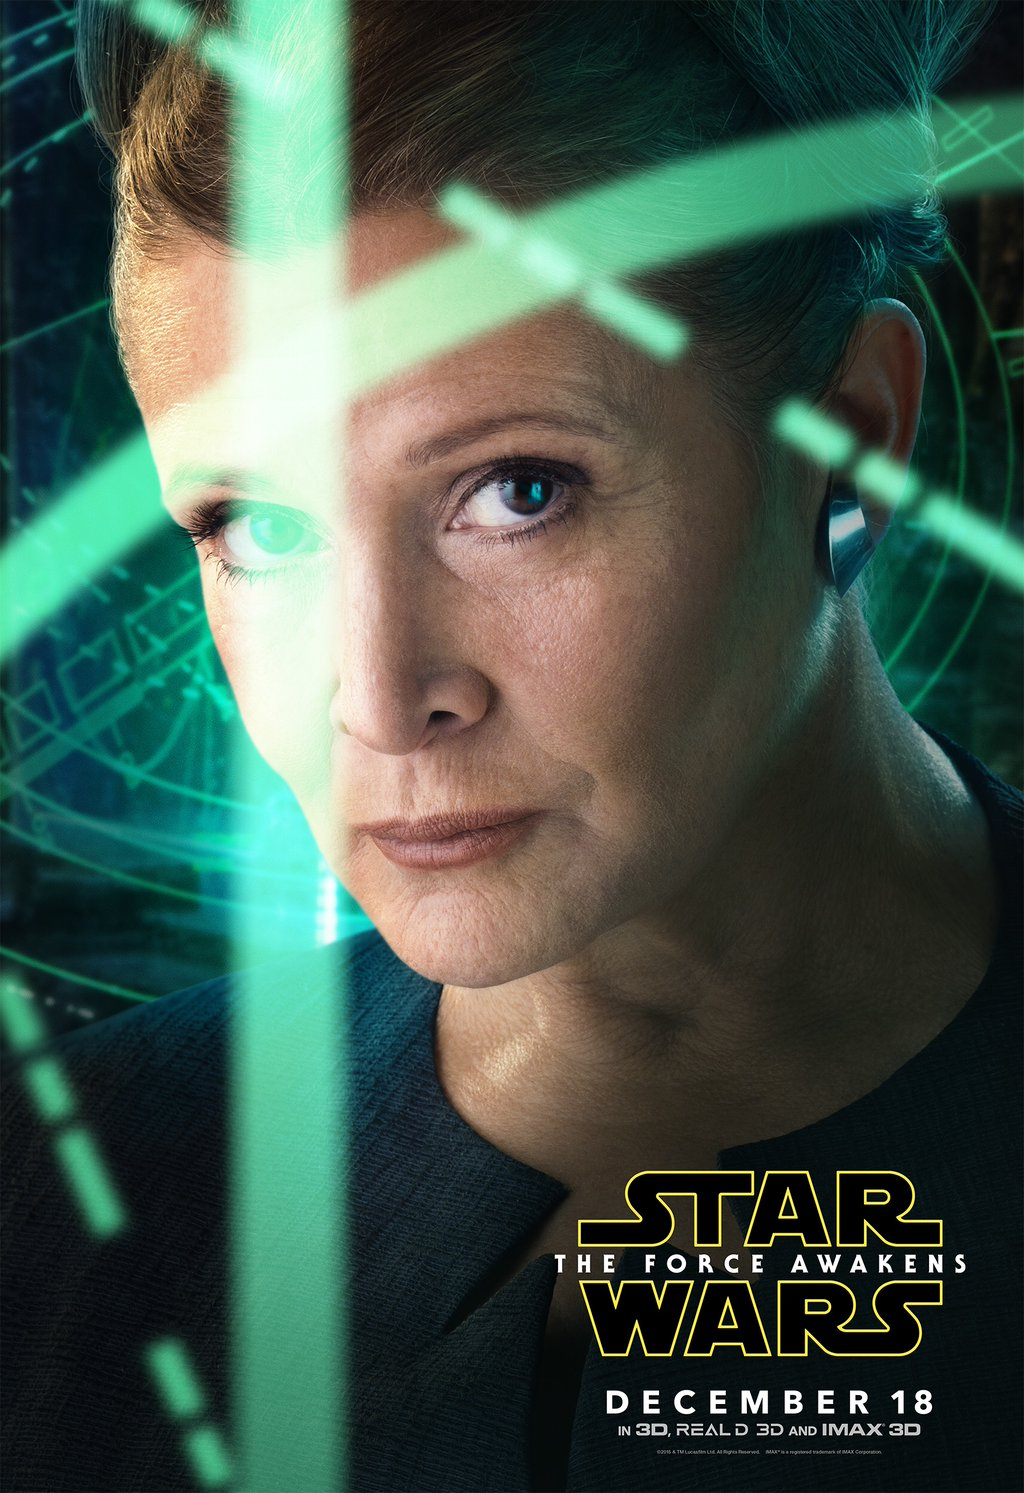 The-Force-Awakens-Posters-Leia-11042015